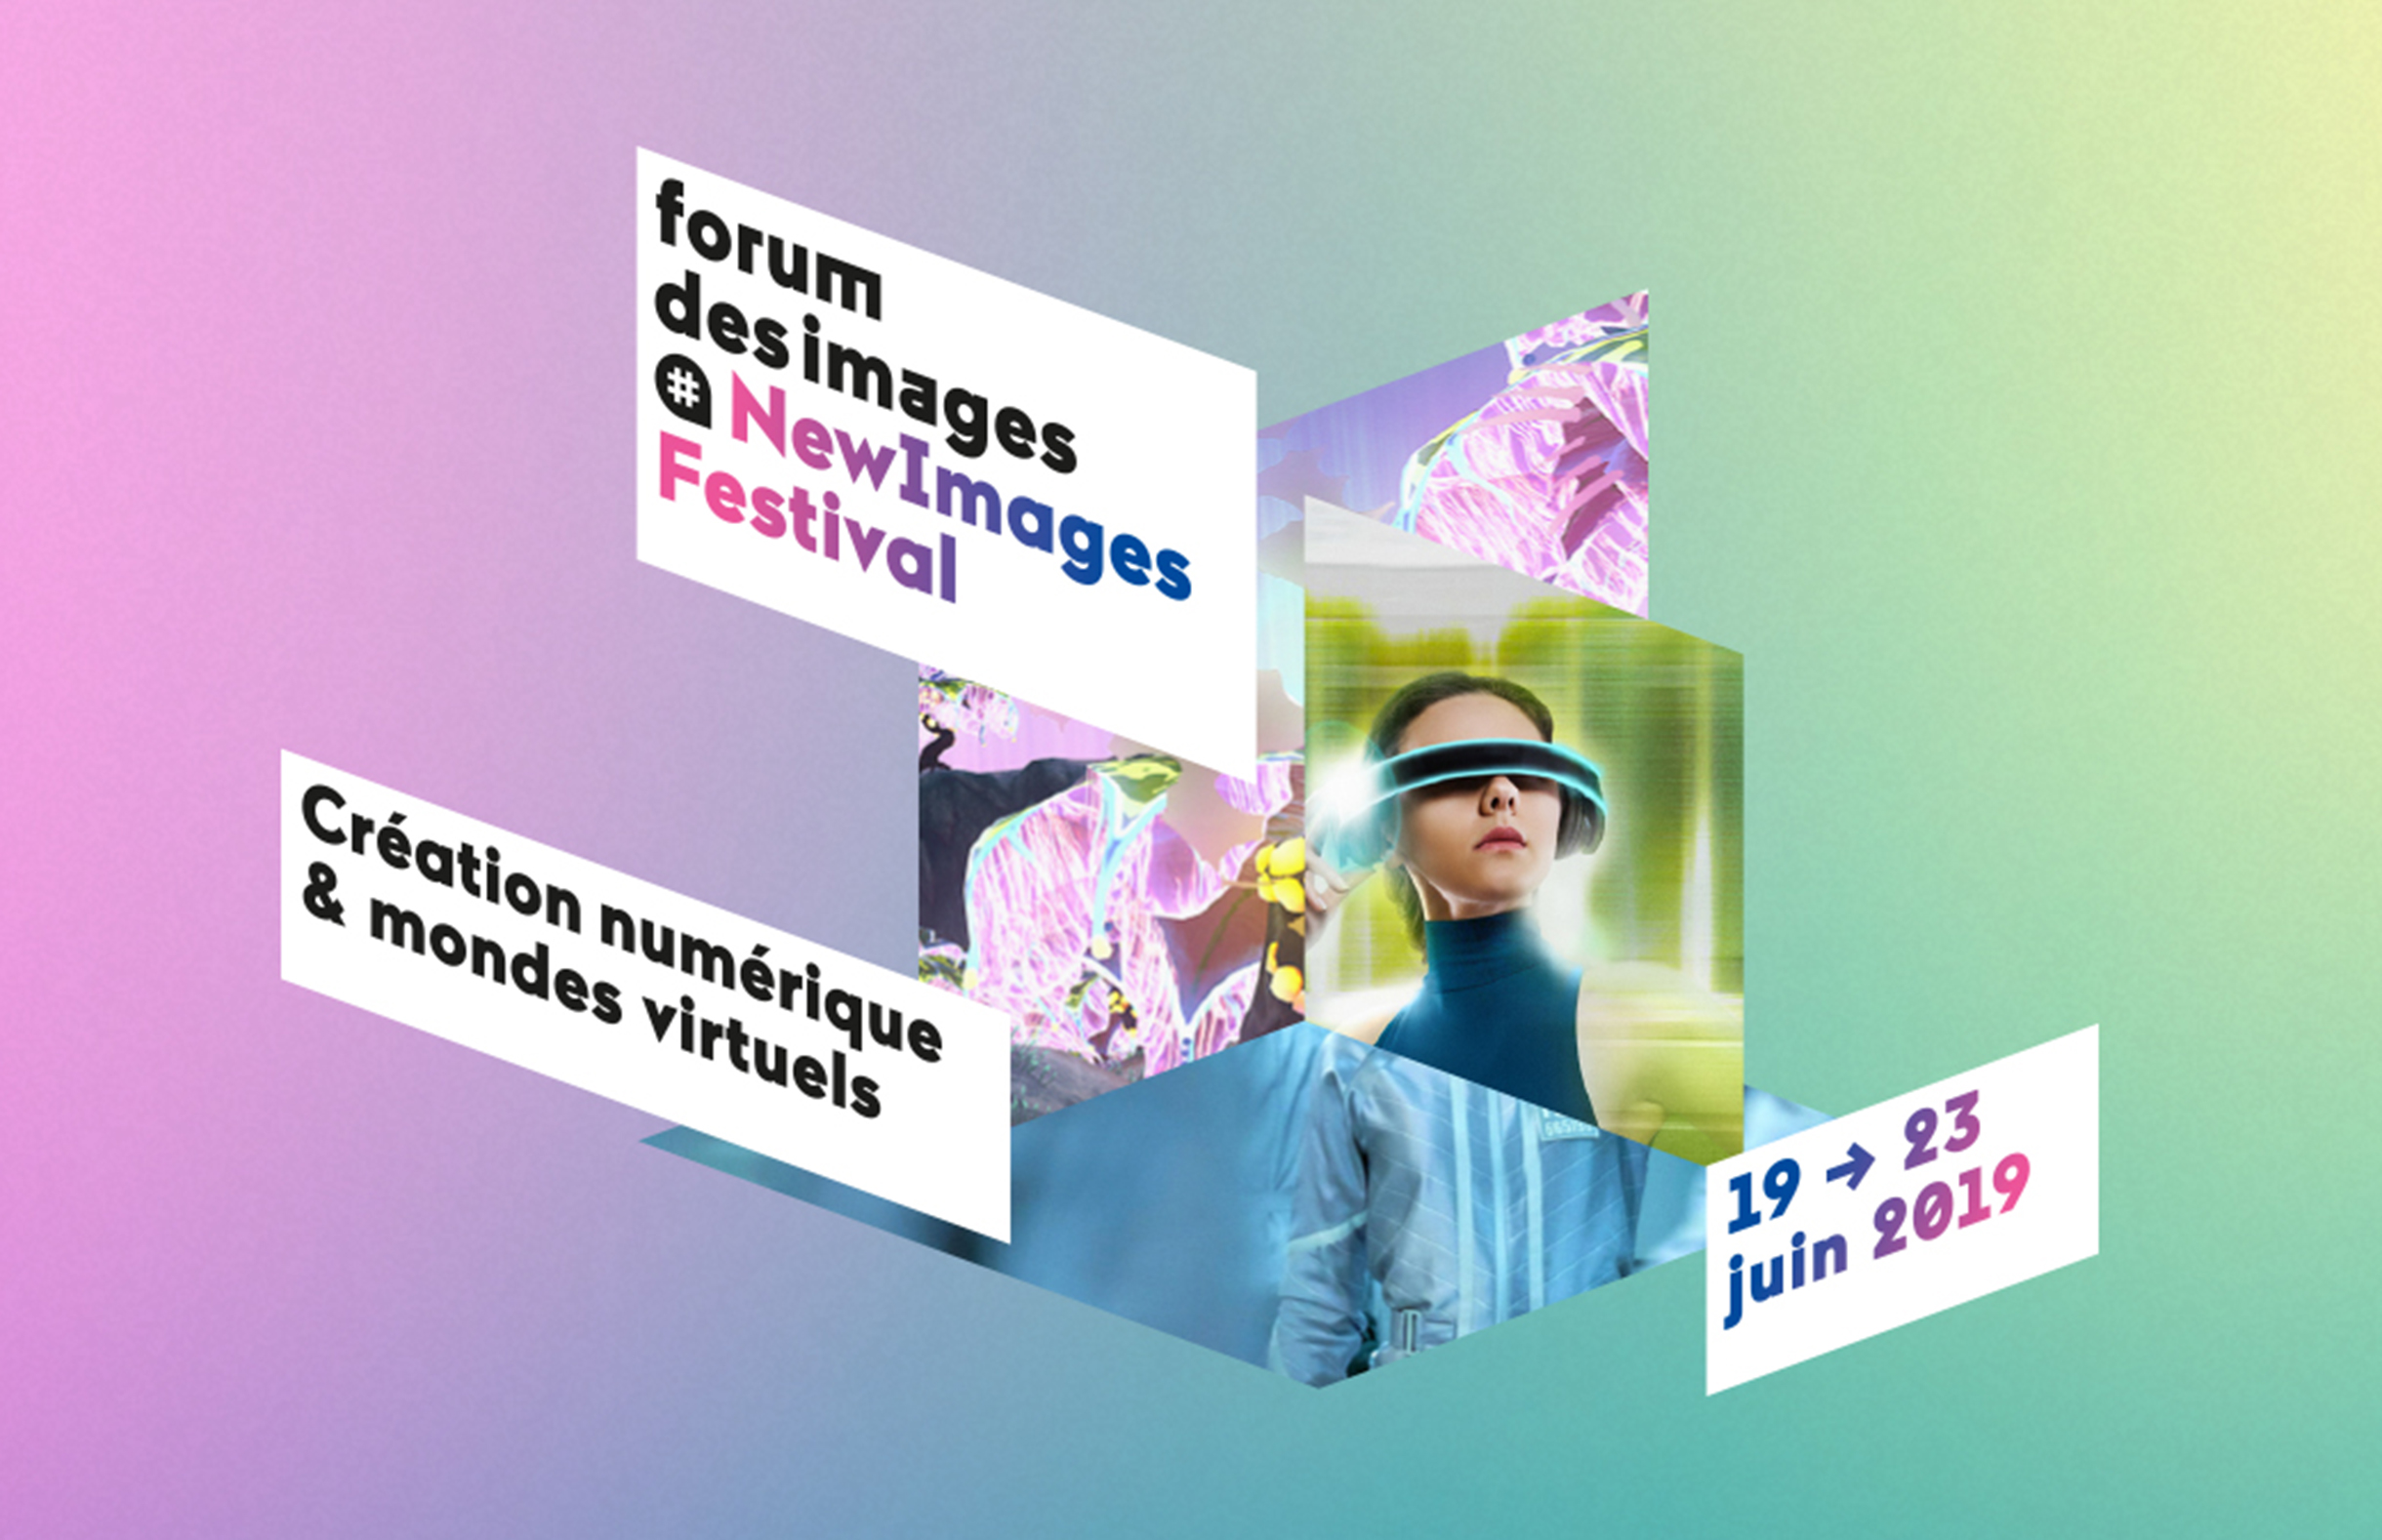 New exhibitions: museums in the age of digital transformation